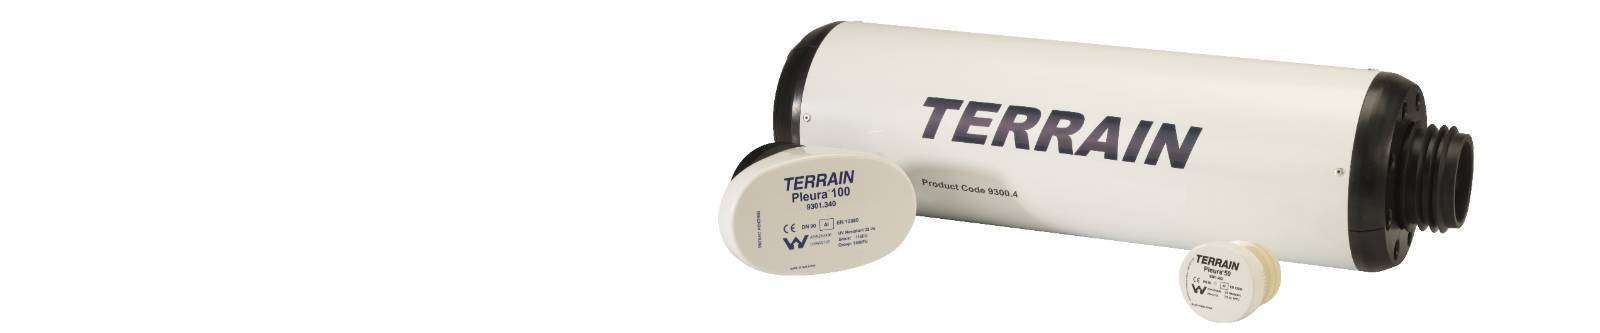 Terrain P.A.P.A® (Positive Air Pressure Attenuator) & Pleura vent system for commercial and public buildings